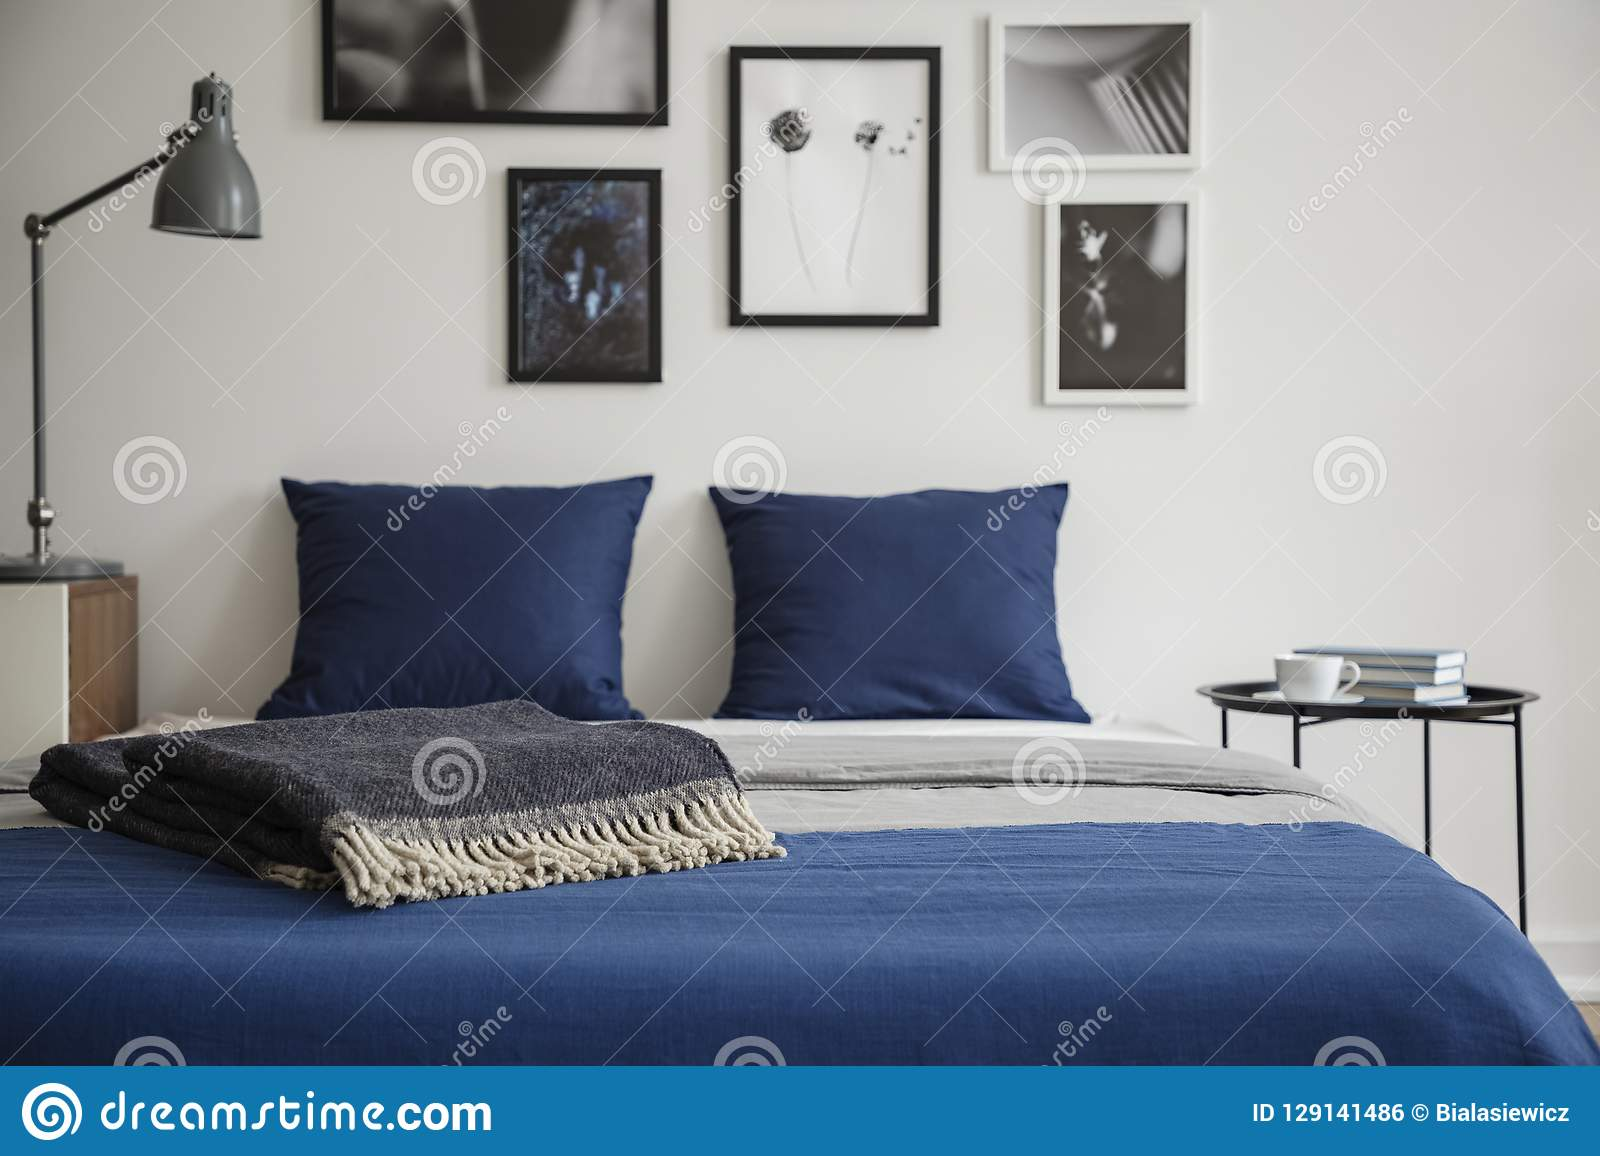 Close-up of bed with blue bedding and dark colored blanket. Bedside table with books and coffee next to it.